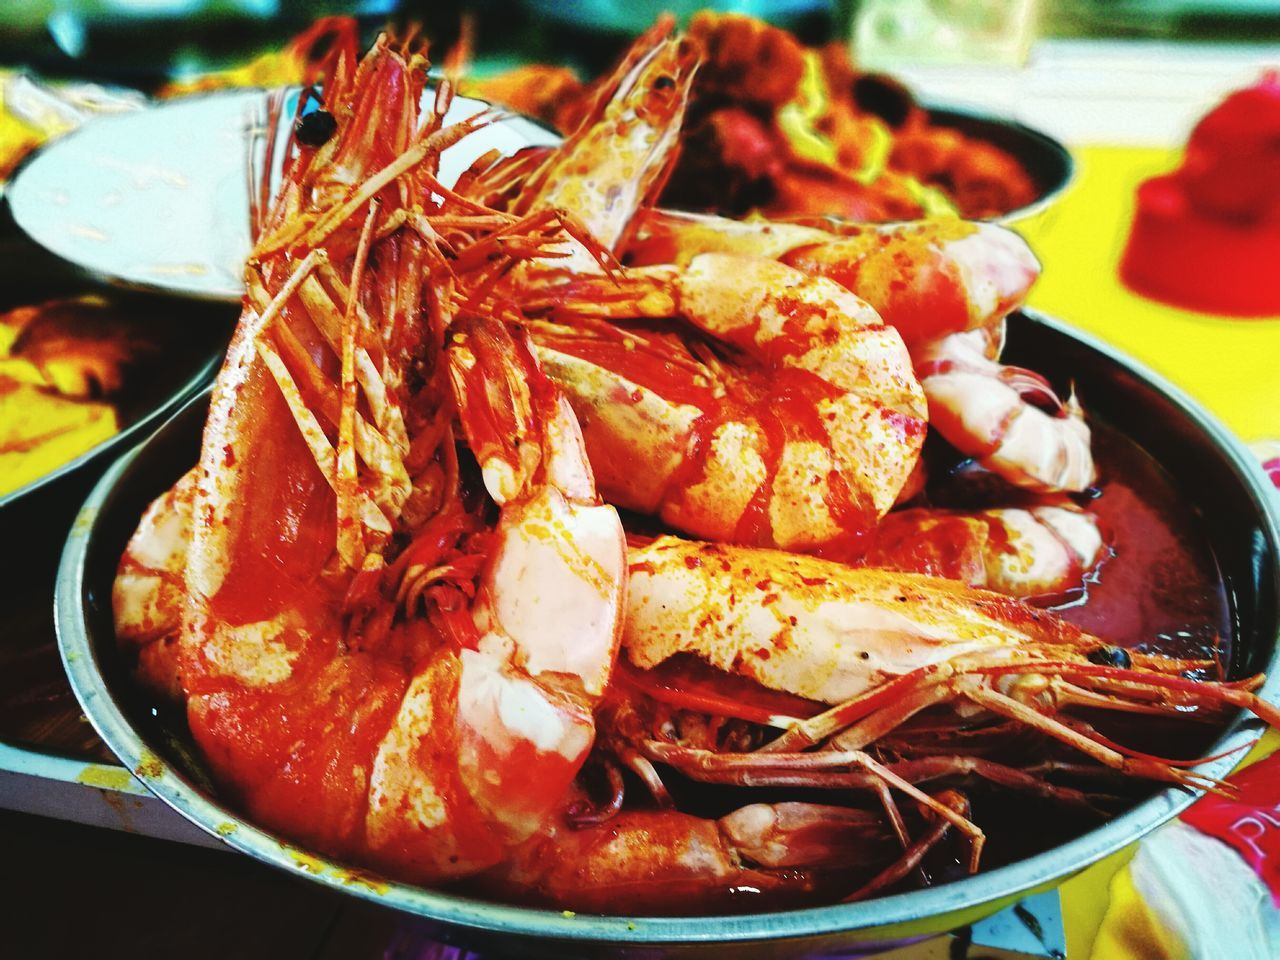 Seafood Close-up Food And Drink Prawn Freshness Crustacean No People Crab - Seafood Lobster Healthy Eating Claw Food Indoors  Day Kelantan Malaysia FishMarket